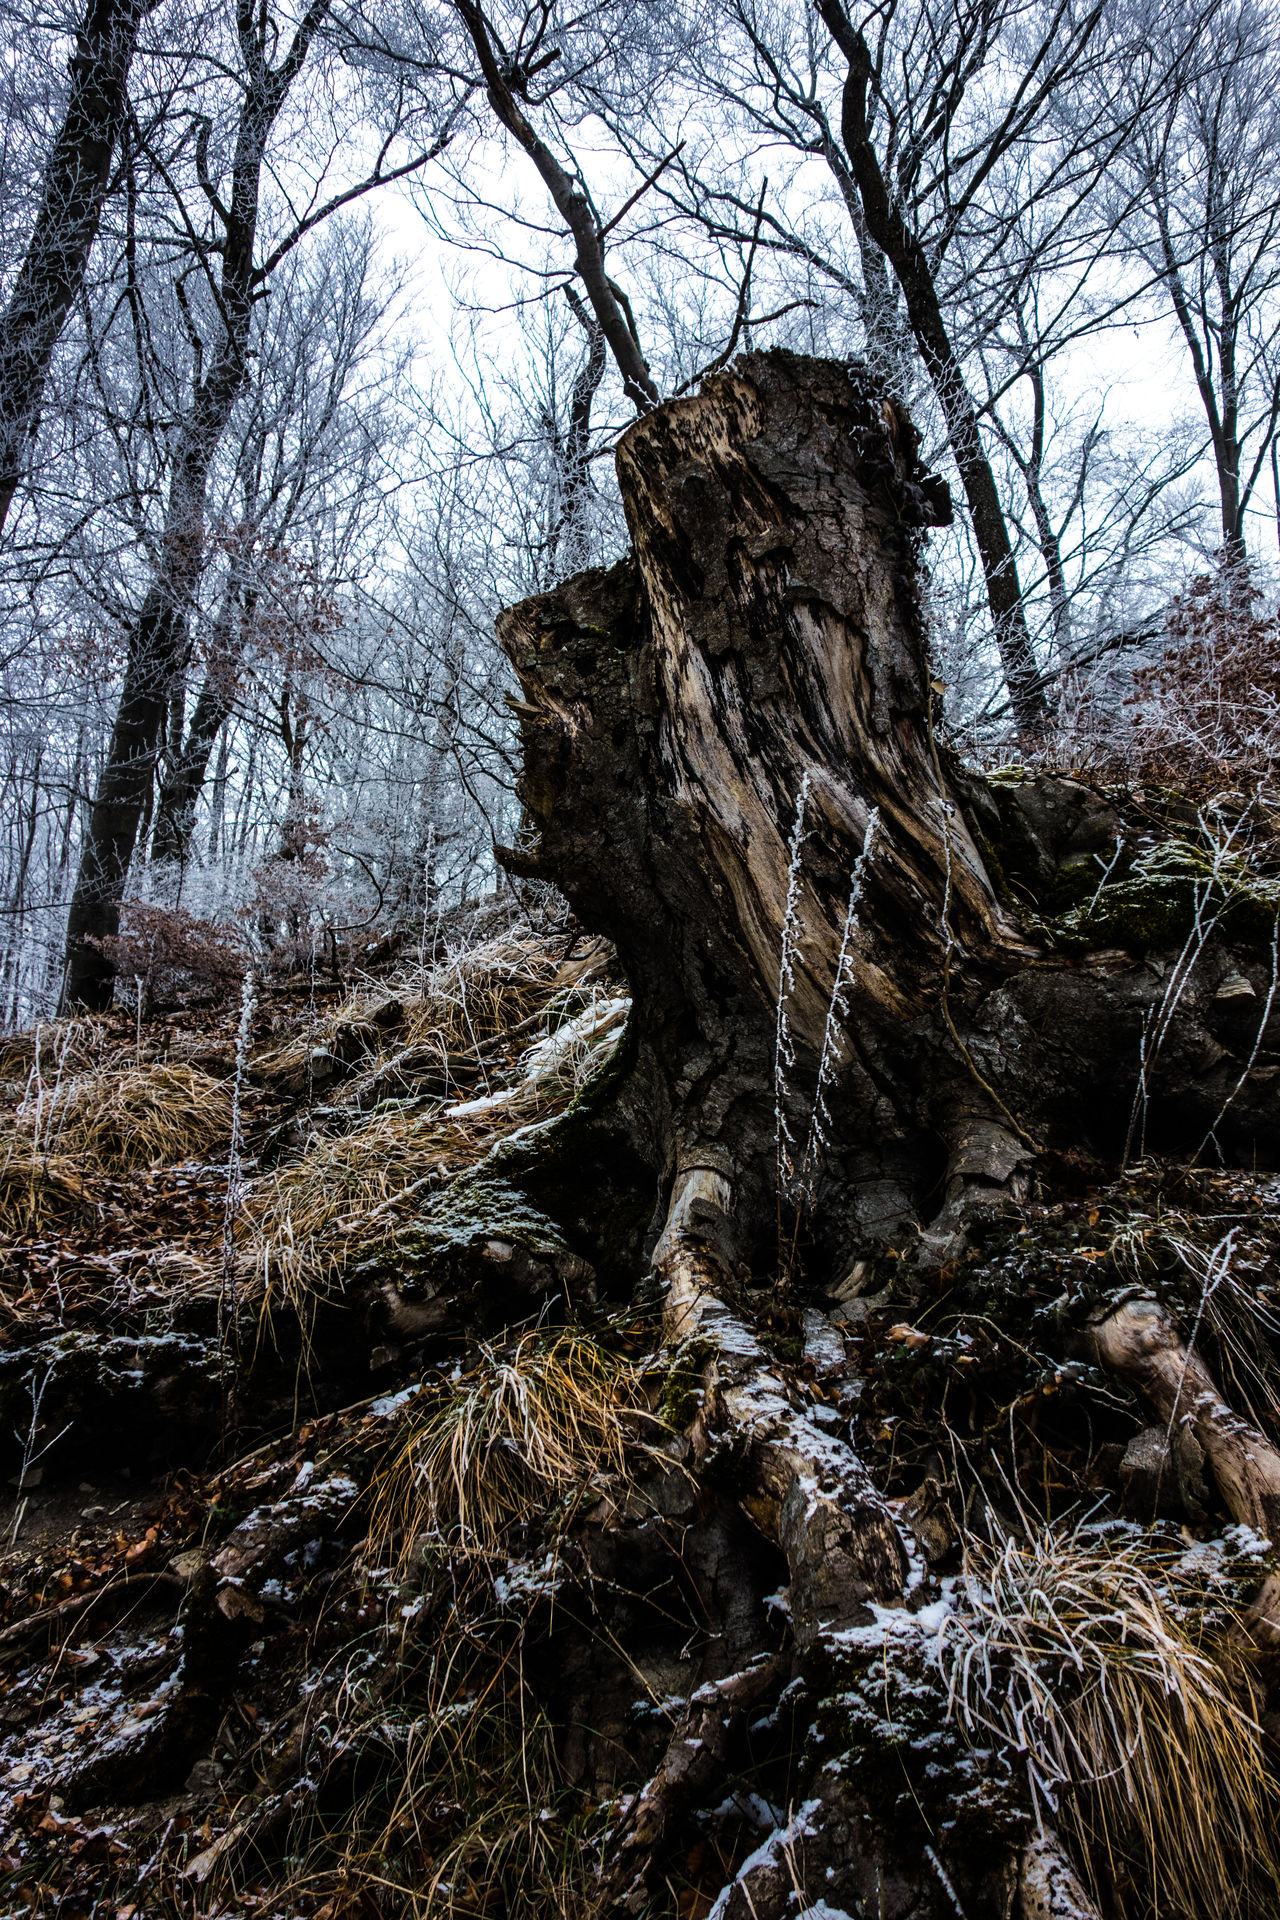 Beauty In Nature Branch Cold Days Cold Temperature Cold Temperture Day Forest Grass Knaggy Knobbed Knotty Landscape Nature No People Outdoors Scenics Sky Snag Snow Stump Tranquility Tree Tree Trunk Winter Winter Trees